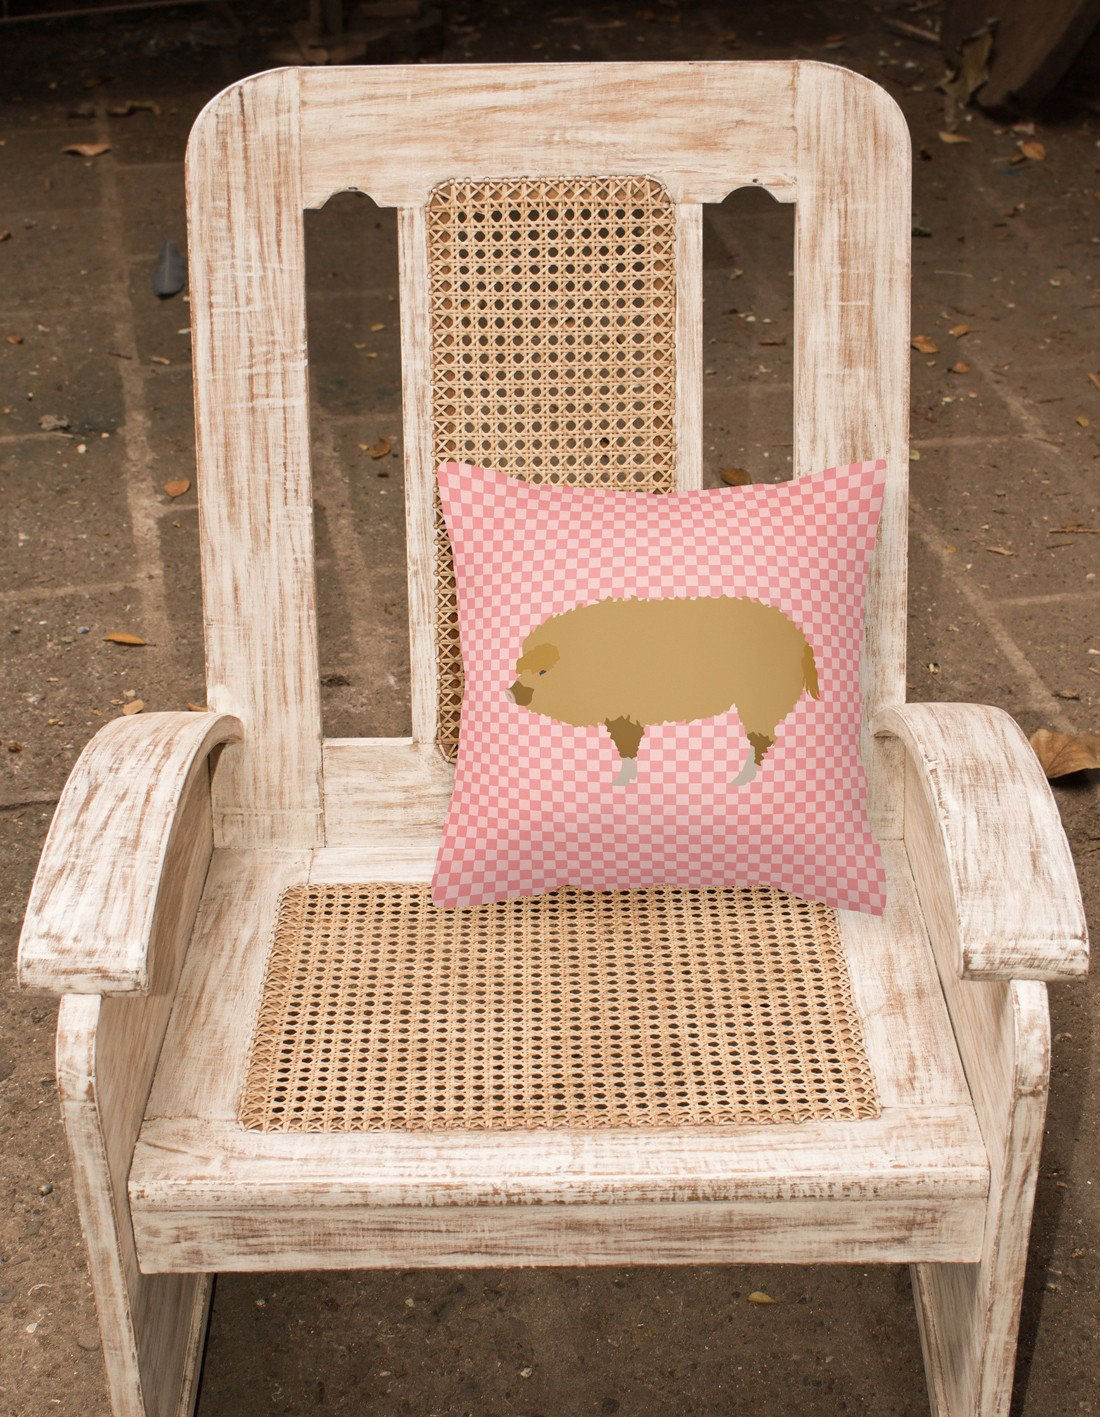 Hungarian Mangalica Pig Pink Check Fabric Decorative Pillow BB7934PW1818 by Caroline's Treasures